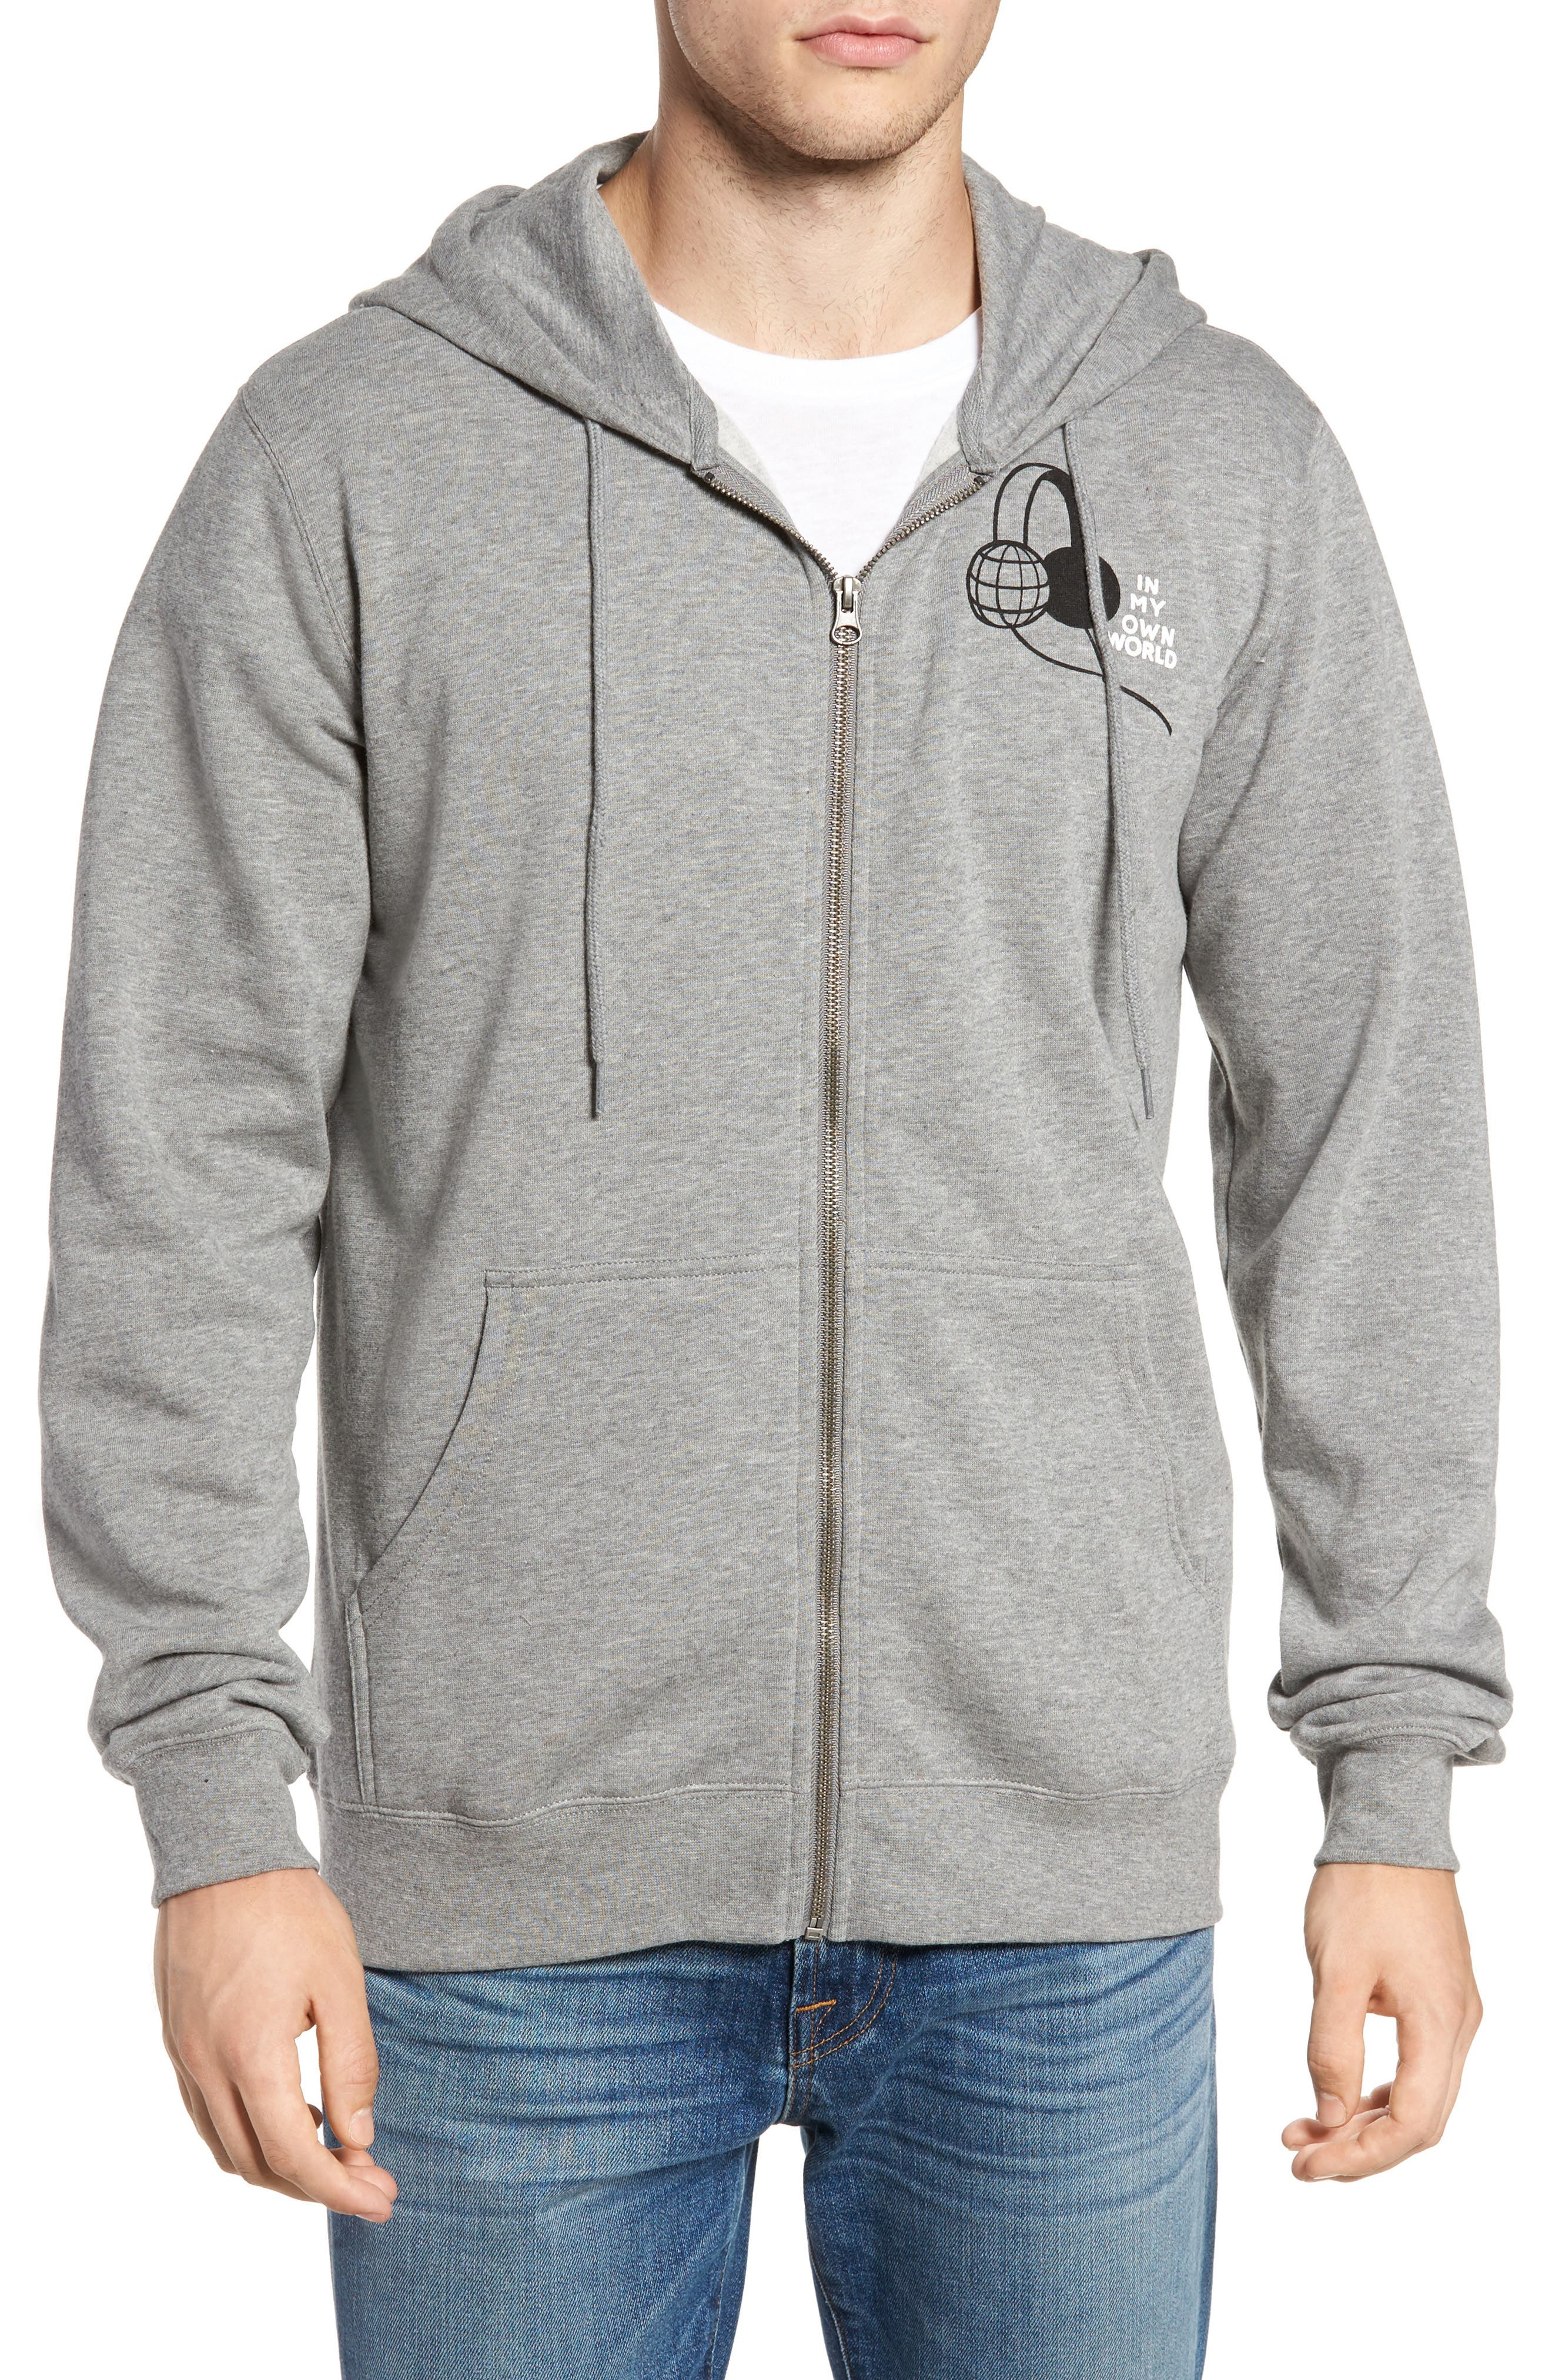 Main Image - RVCA In My Own World Zip Hoodie